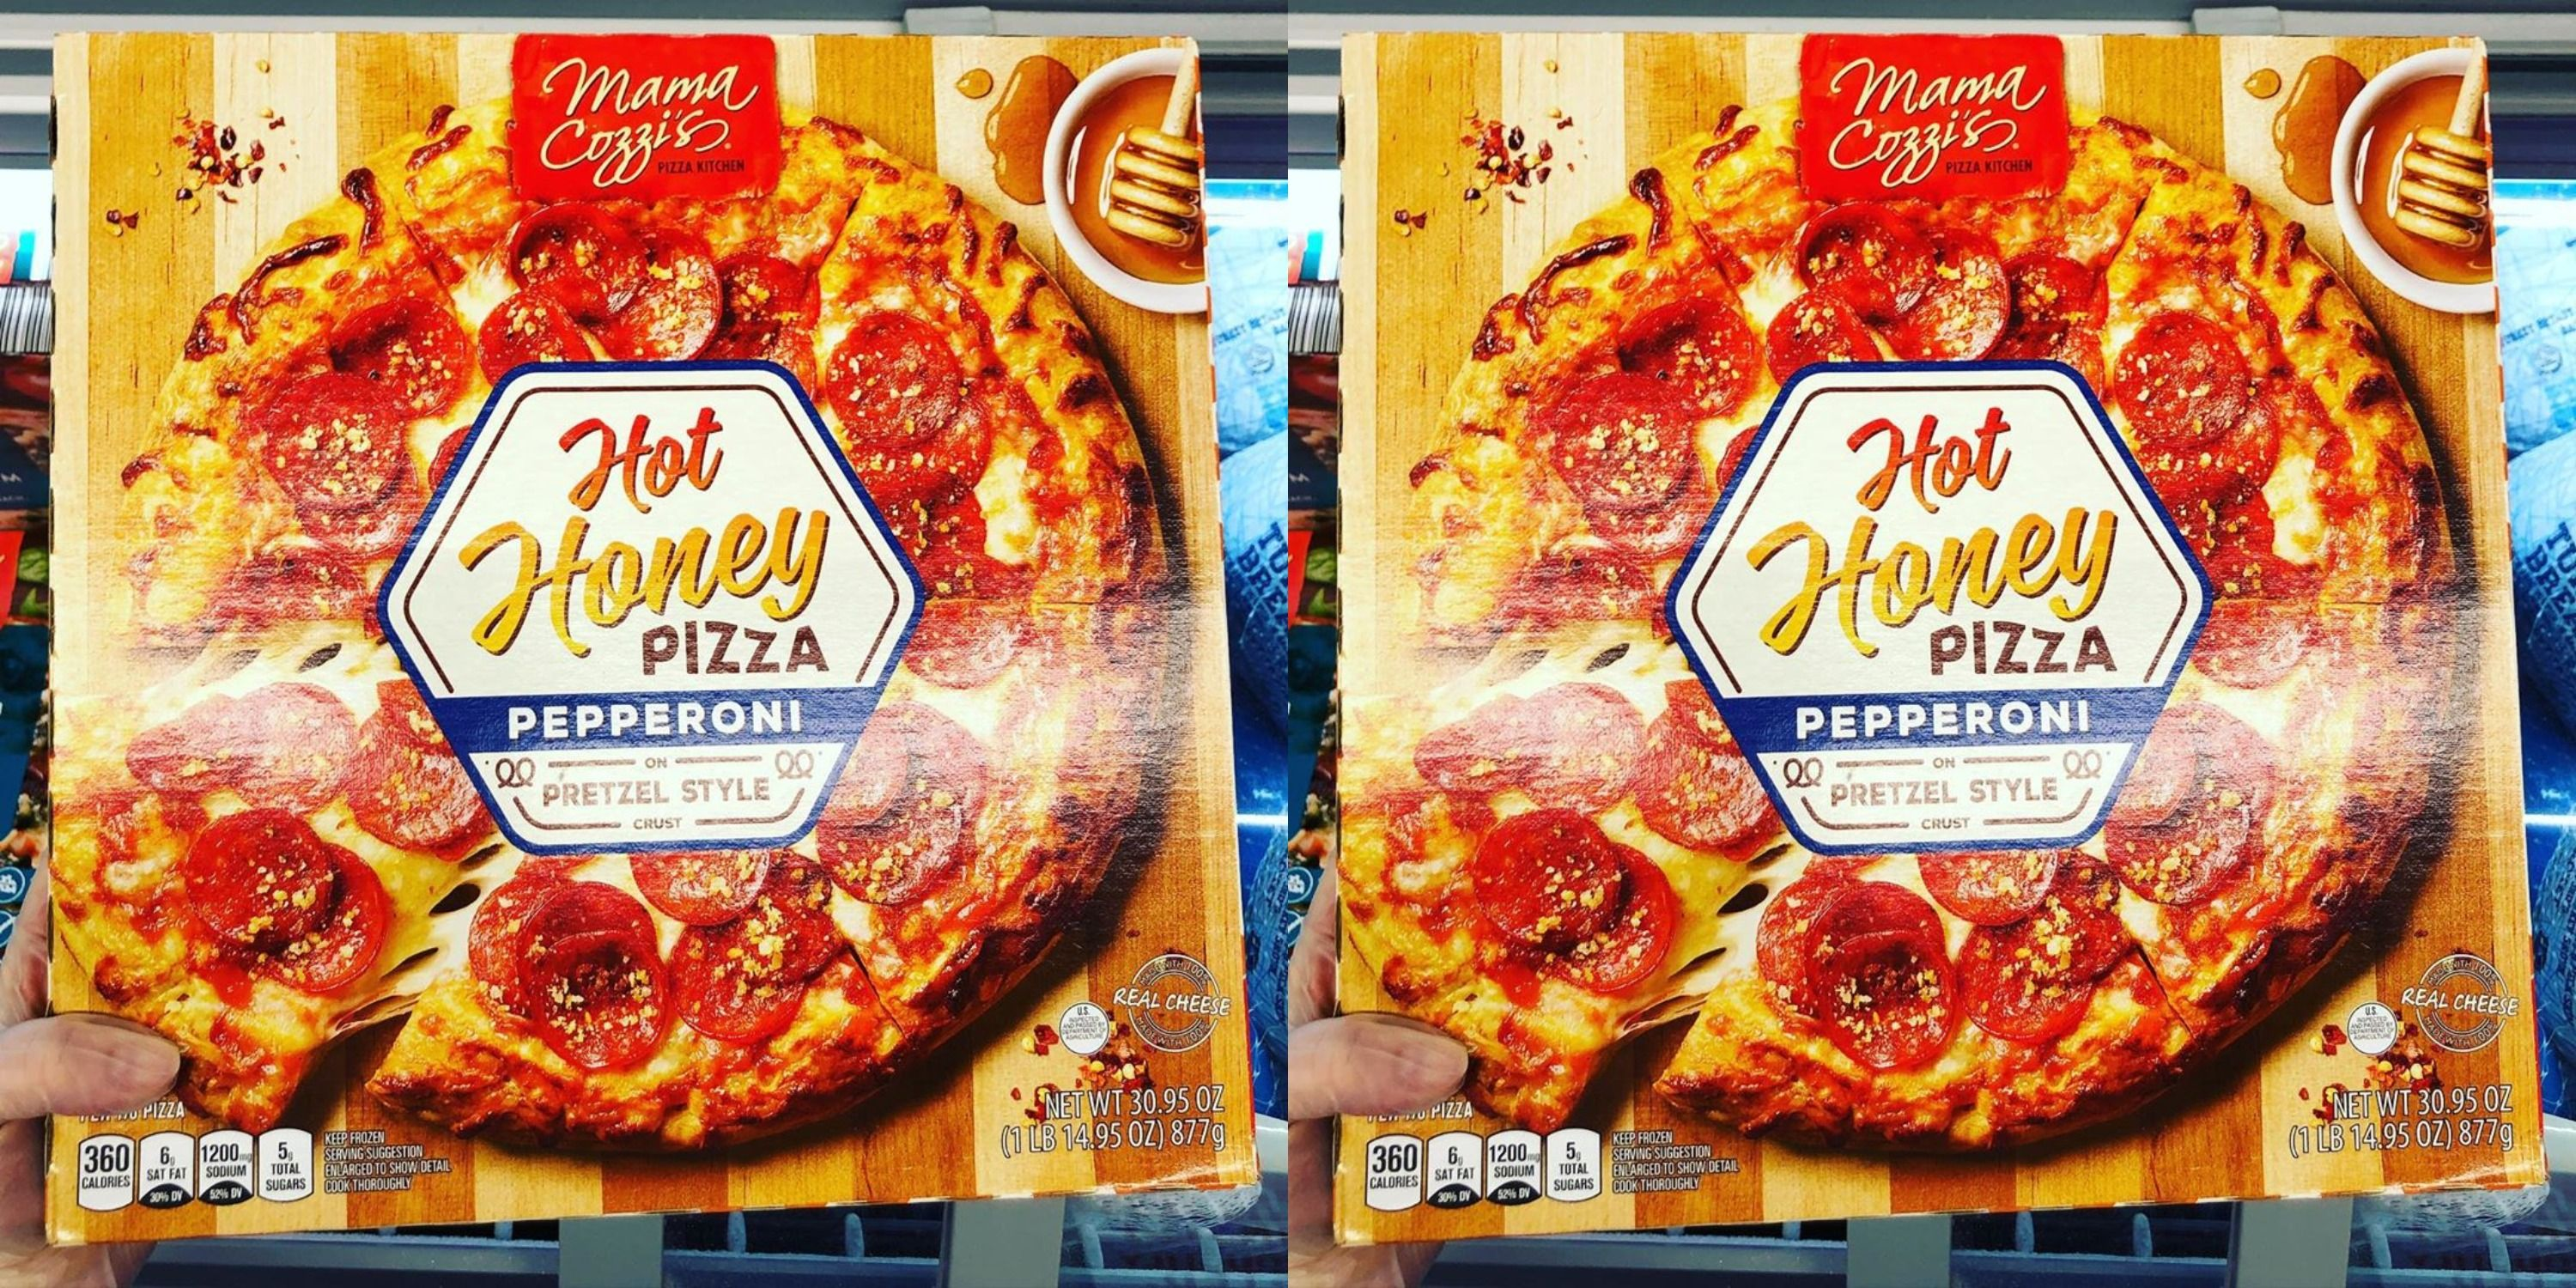 Aldi Has Pepperoni Pizza On A Pretzel Crust And Drizzled With Hot Honey